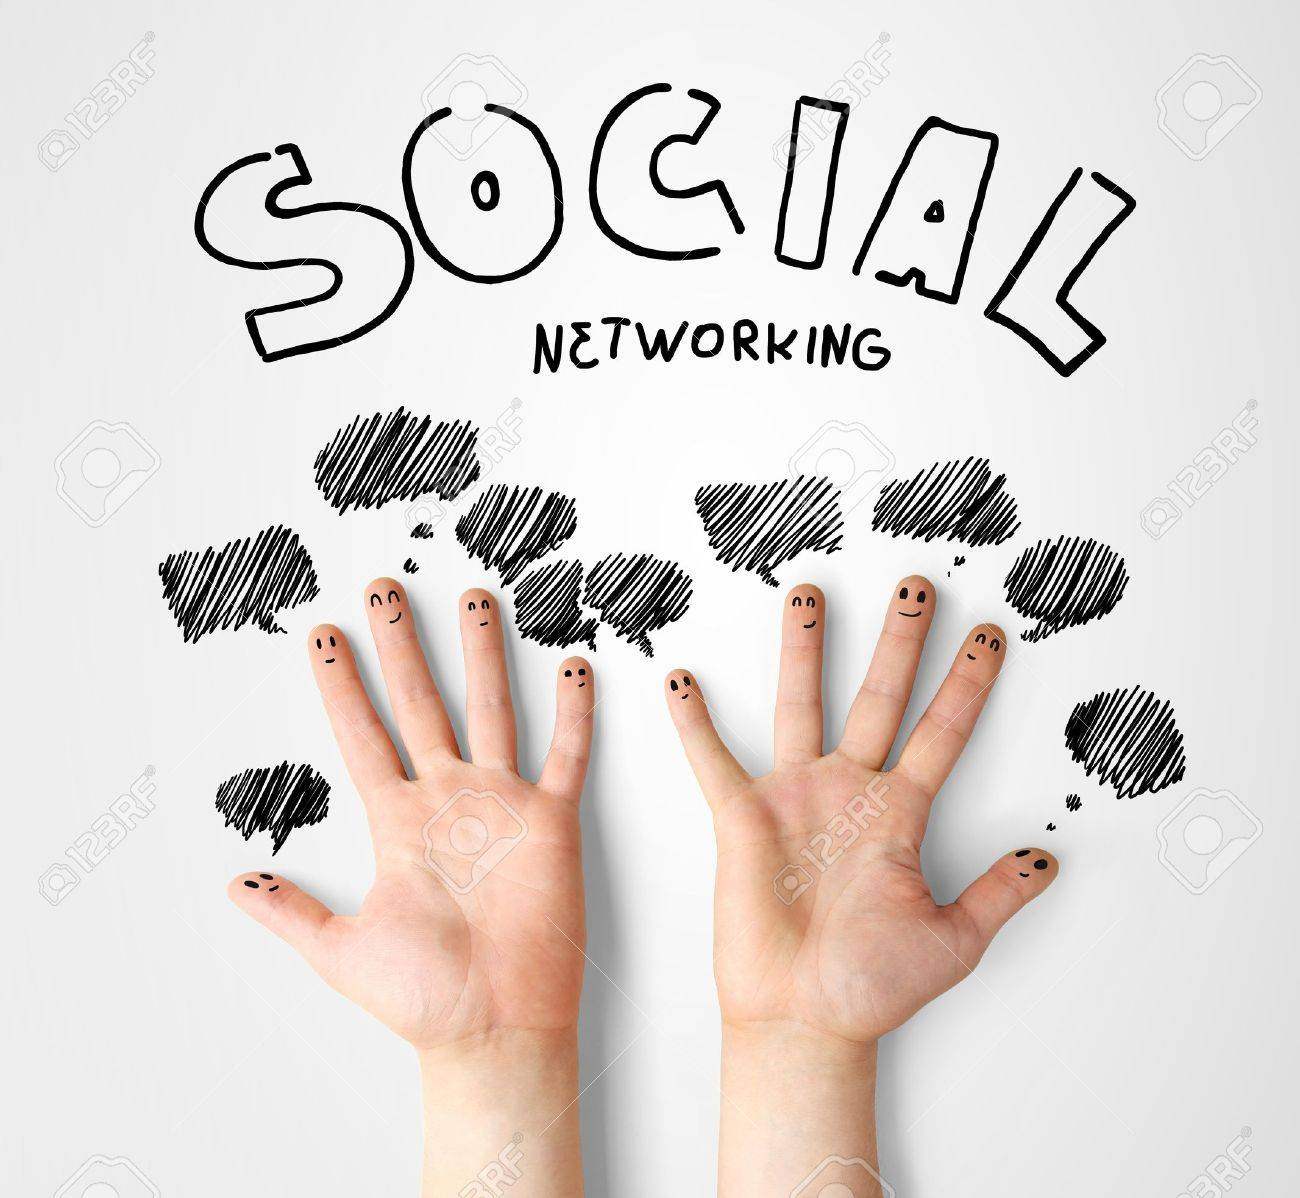 social network, finger smileys with speech bubbles Stock Photo - 14710021